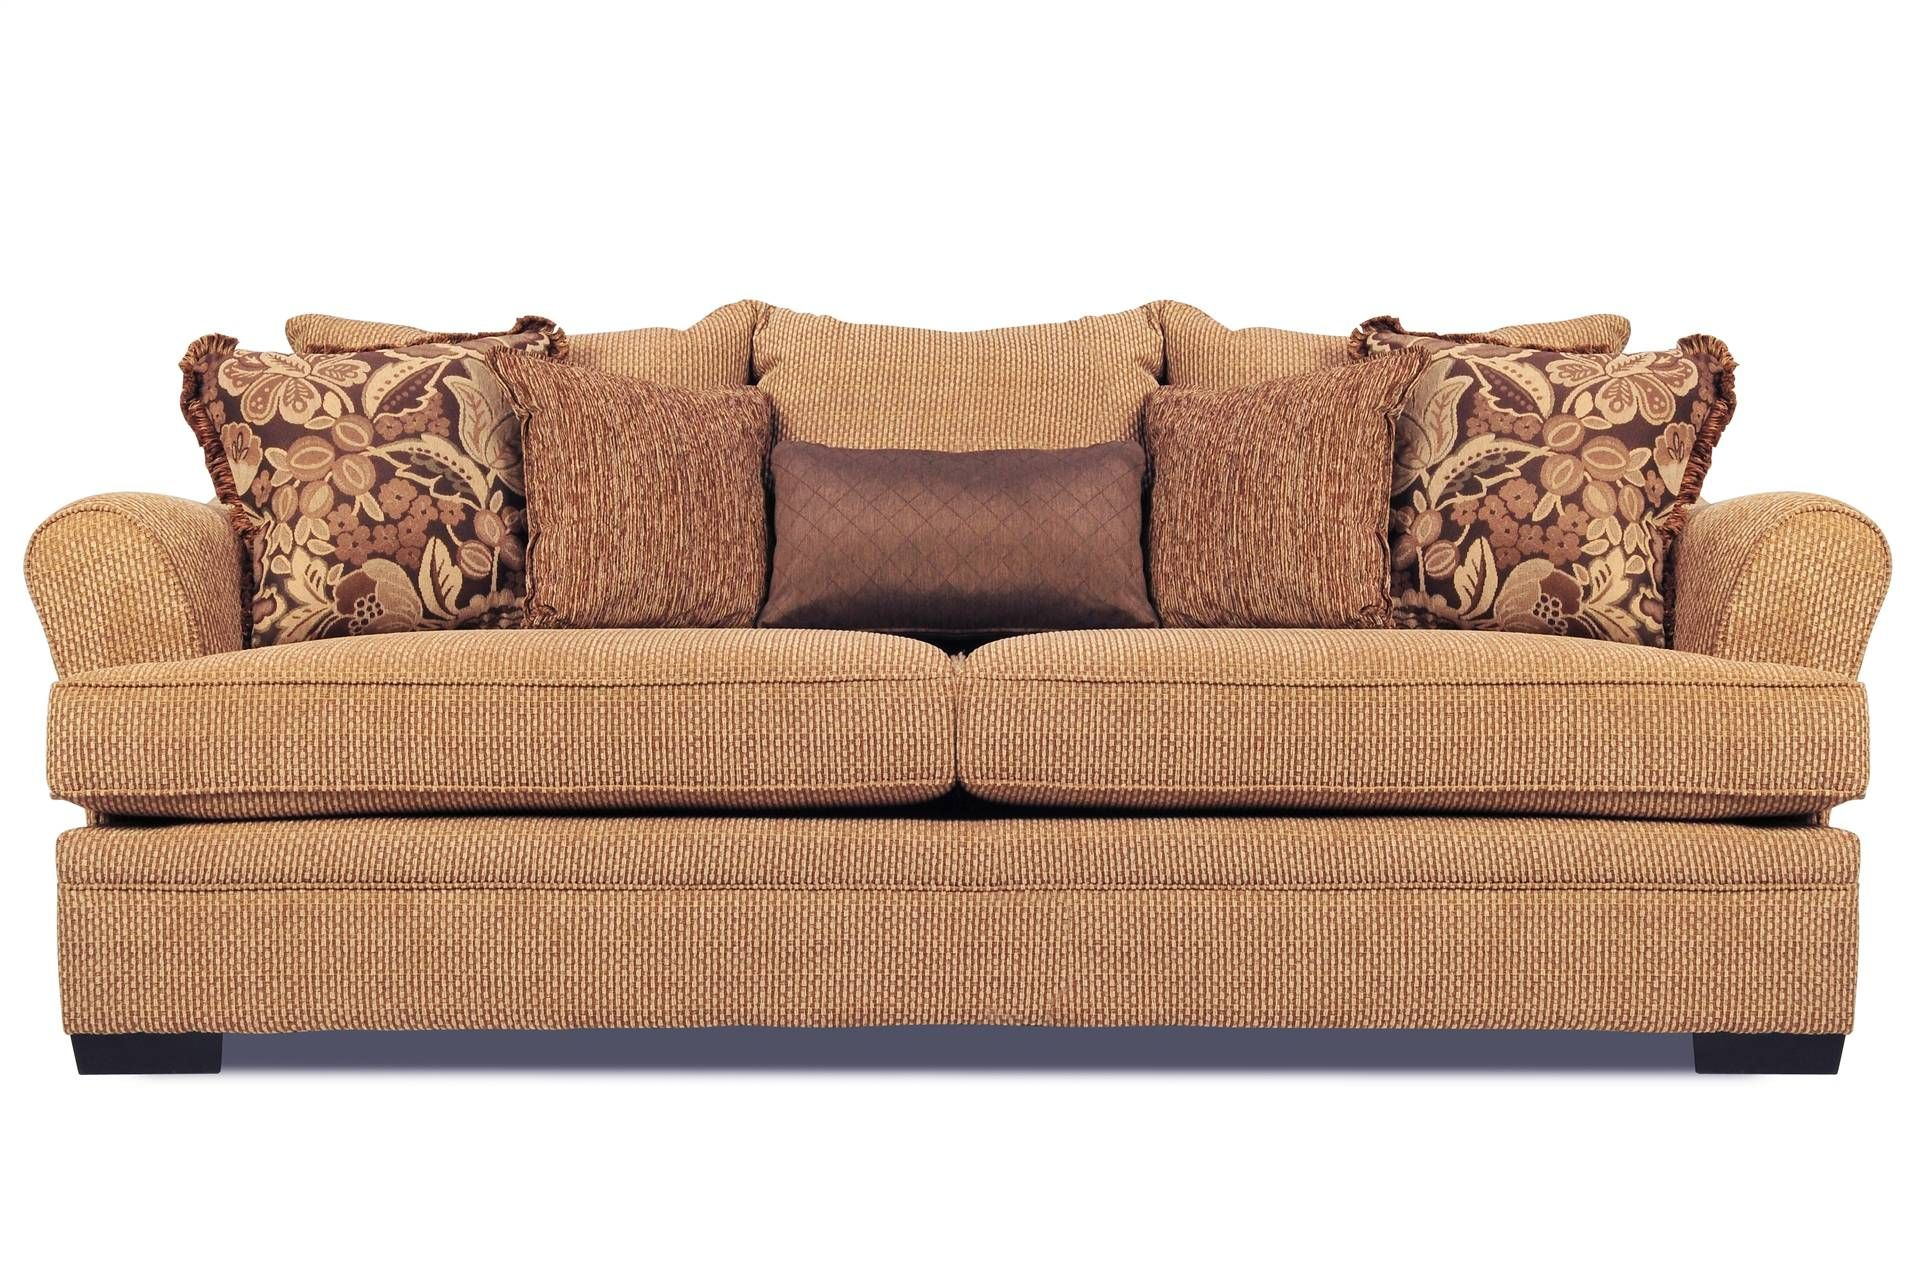 Garland Sofa Shop furniture online, Sofa styling, Living